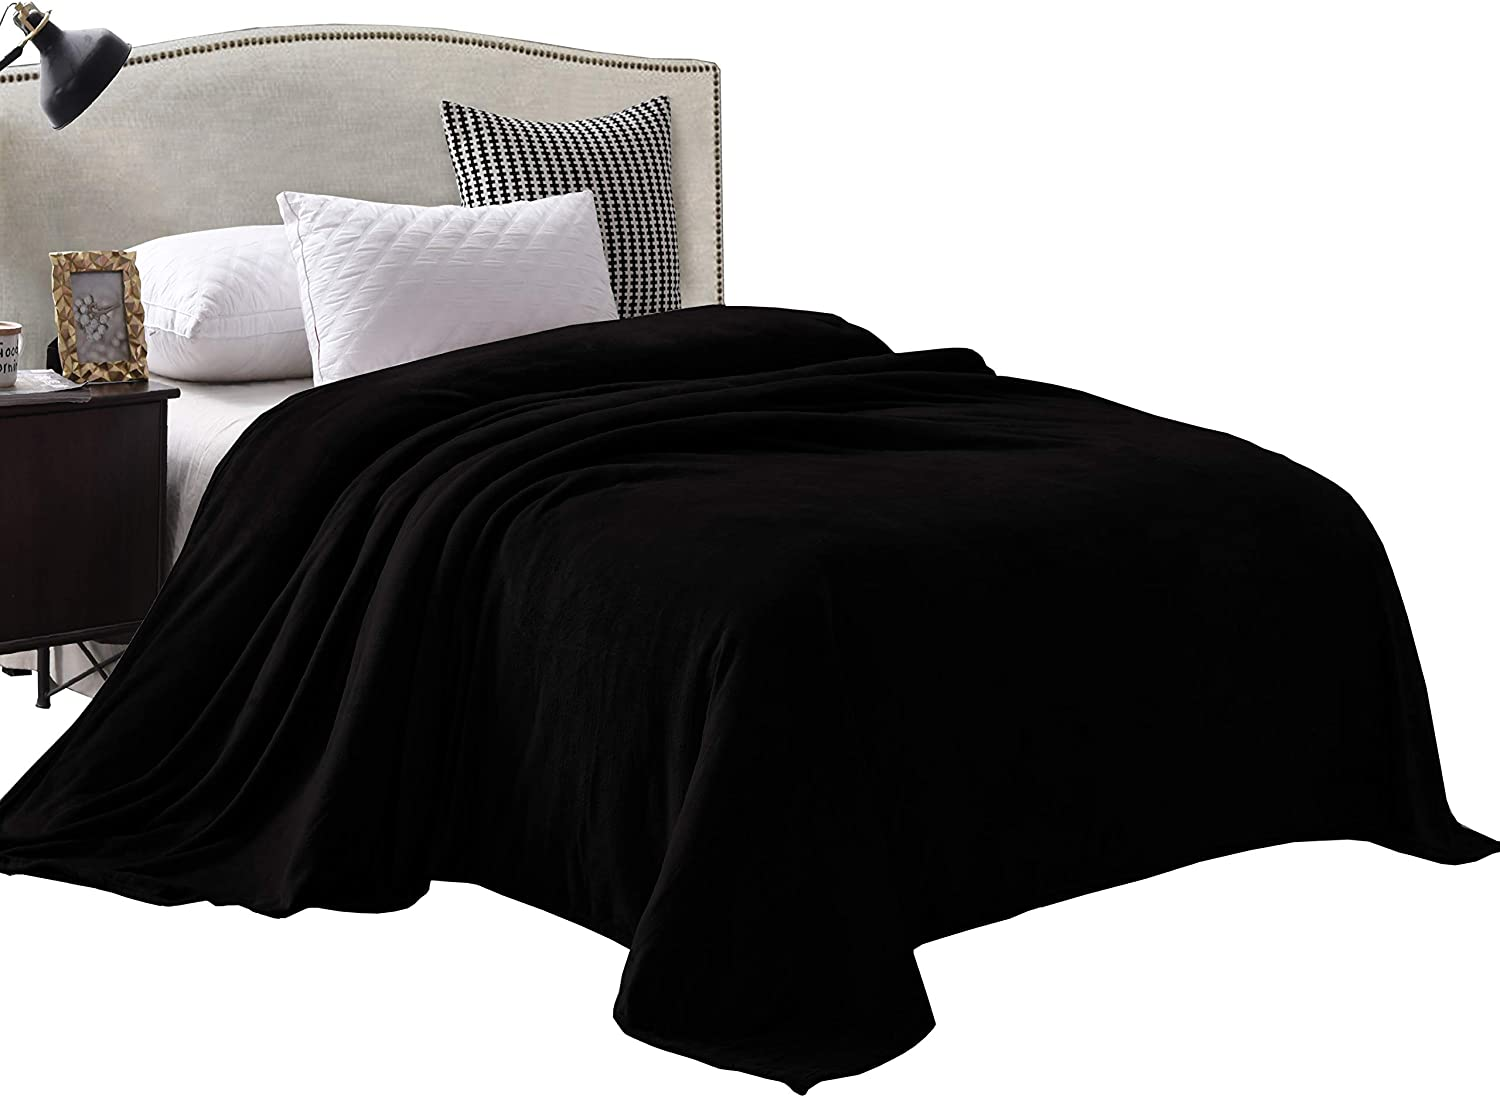 "Exclusivo Mezcla Luxury King Size Flannel Velvet Plush Solid Bed Blanket as Bedspread/Coverlet/Bed Cover (90"" x 104"", Black) - Soft, Lightweight, Warm and Cozy"